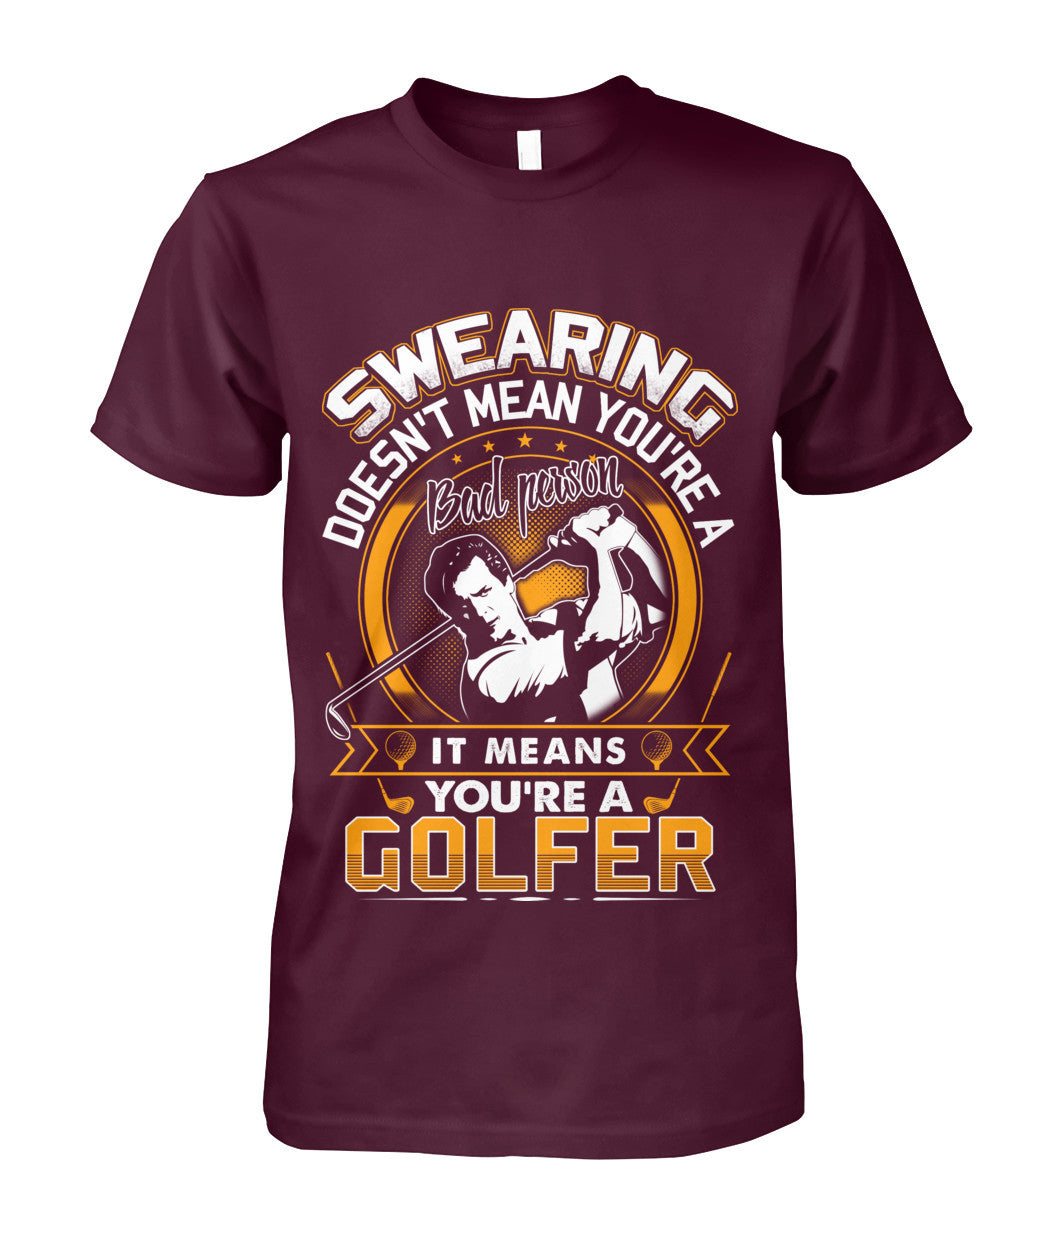 You are a golfer shirt-Apparel - AllGolfUSA.COM